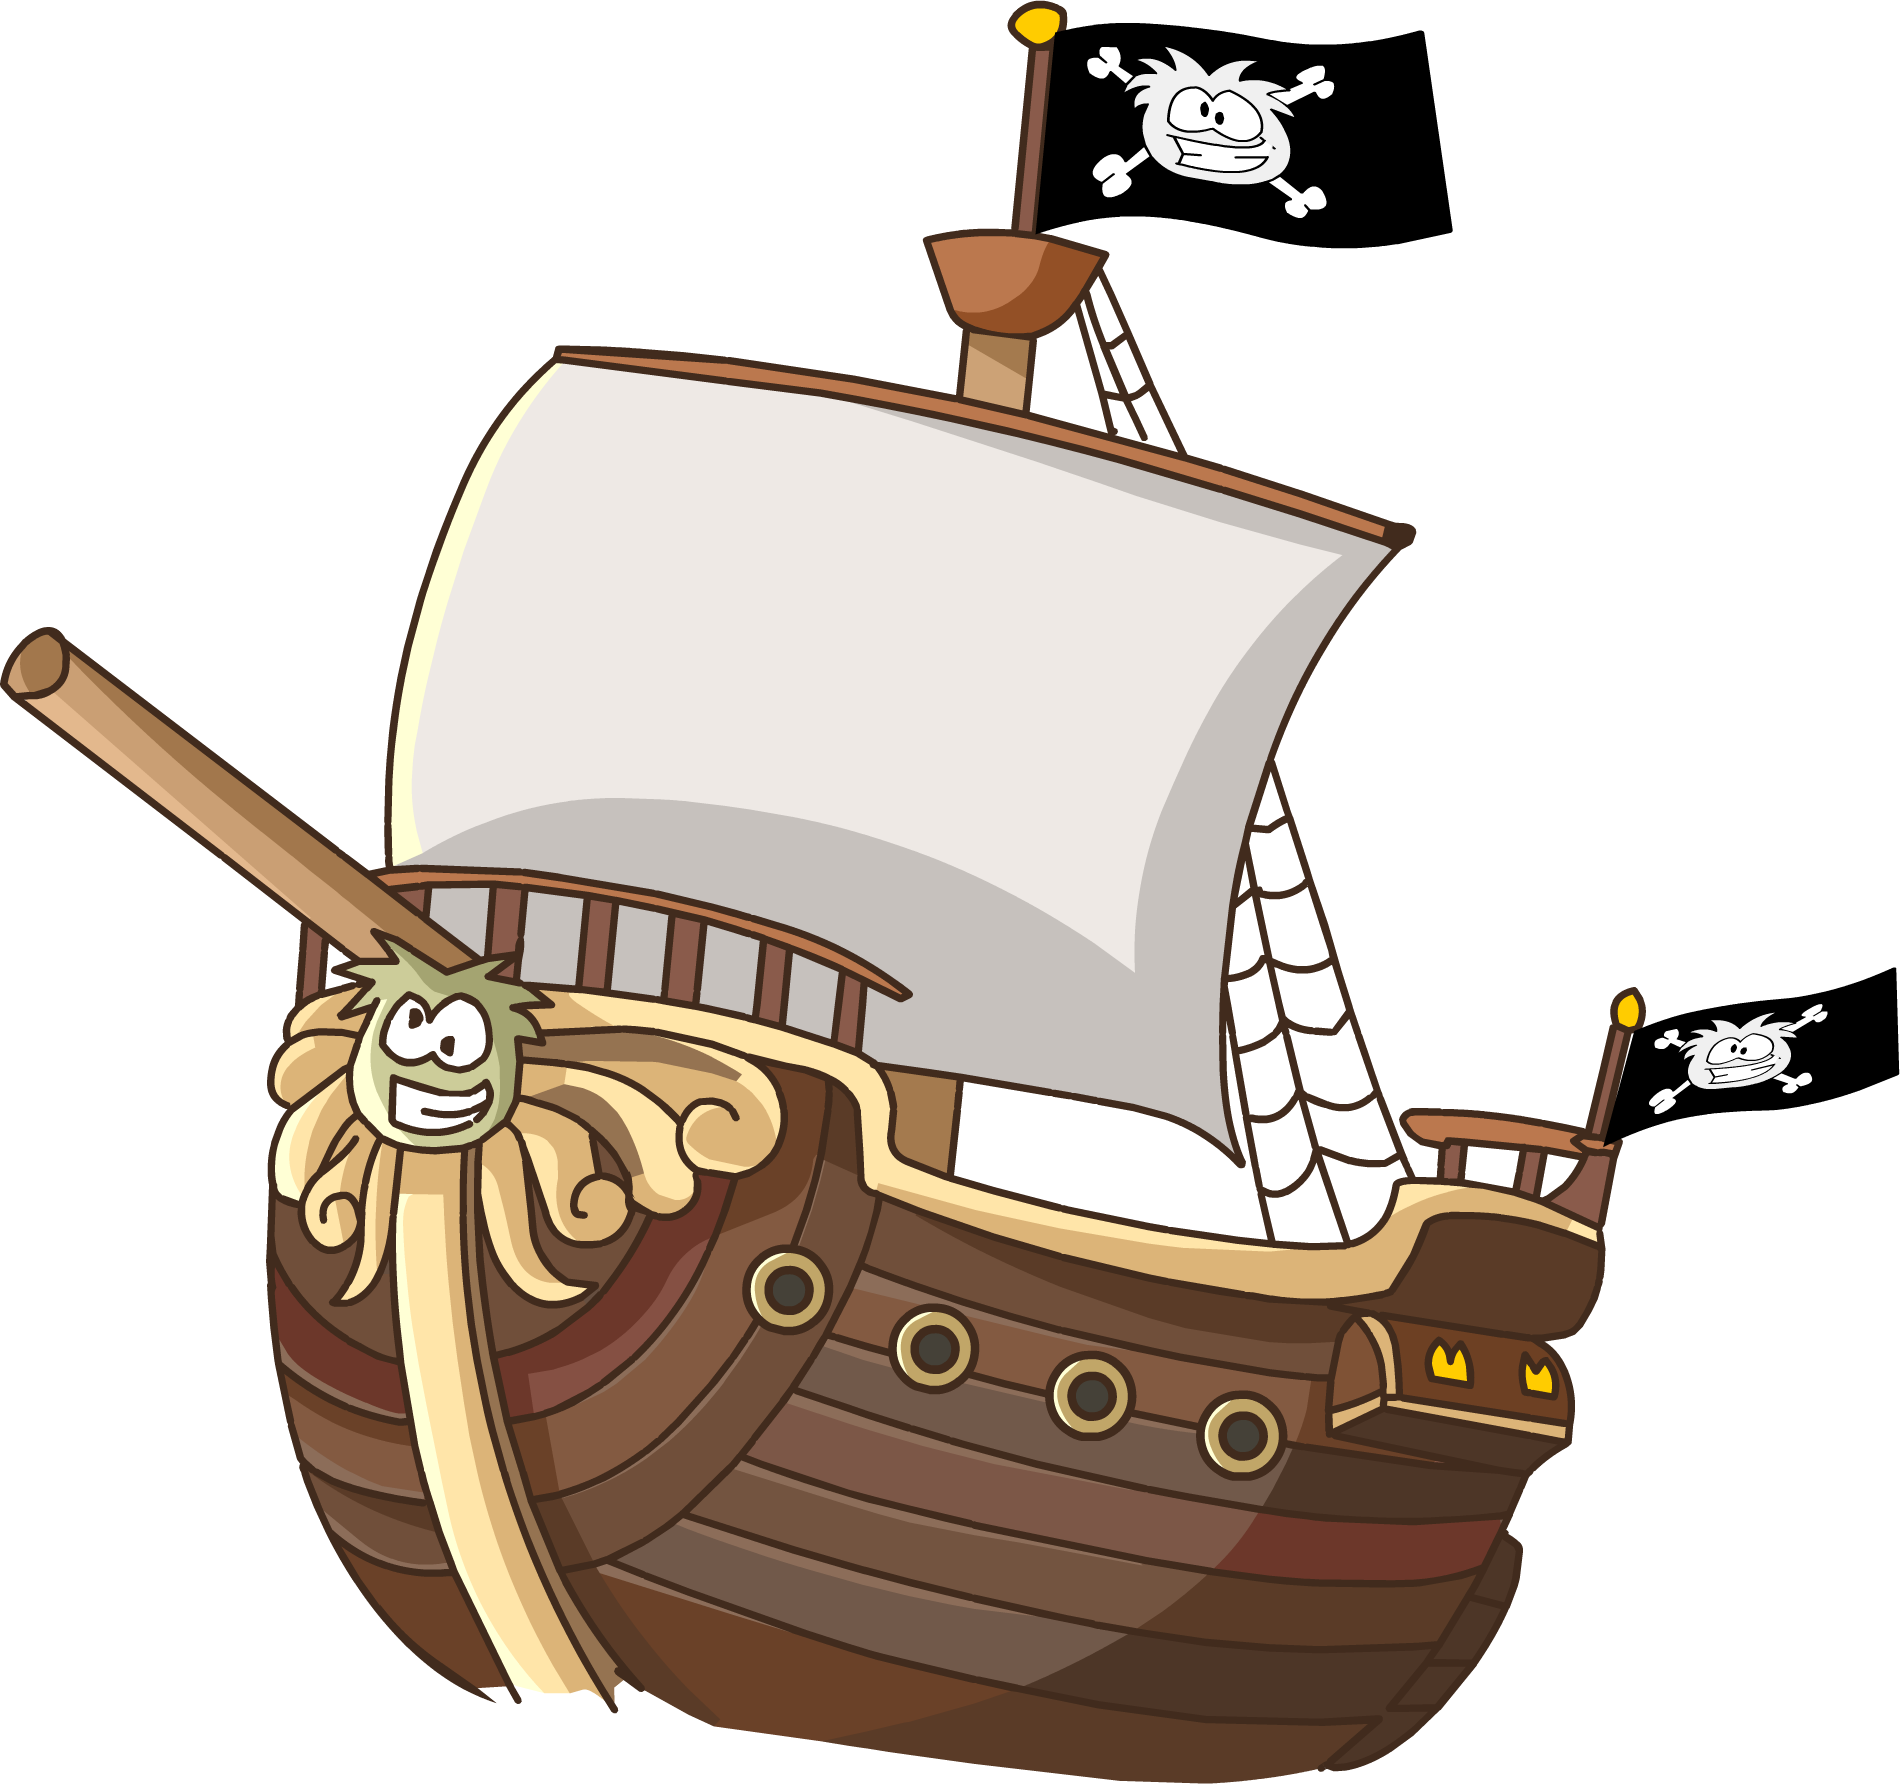 png freeuse stock The migrator club penguin. Cannon clipart ship.